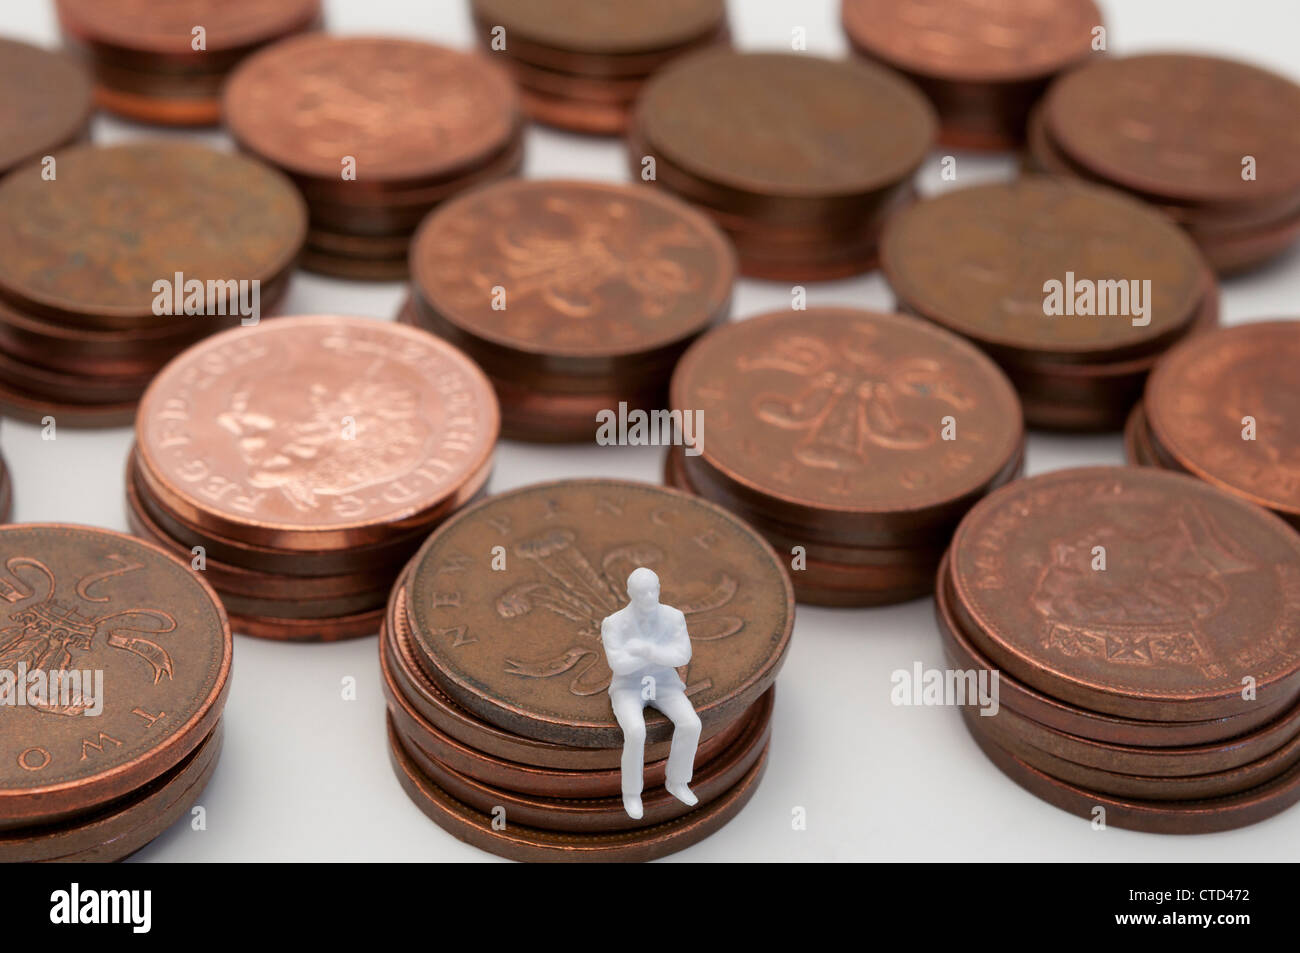 Worried figure sitting on pile of copper two pence pieces - Stock Image